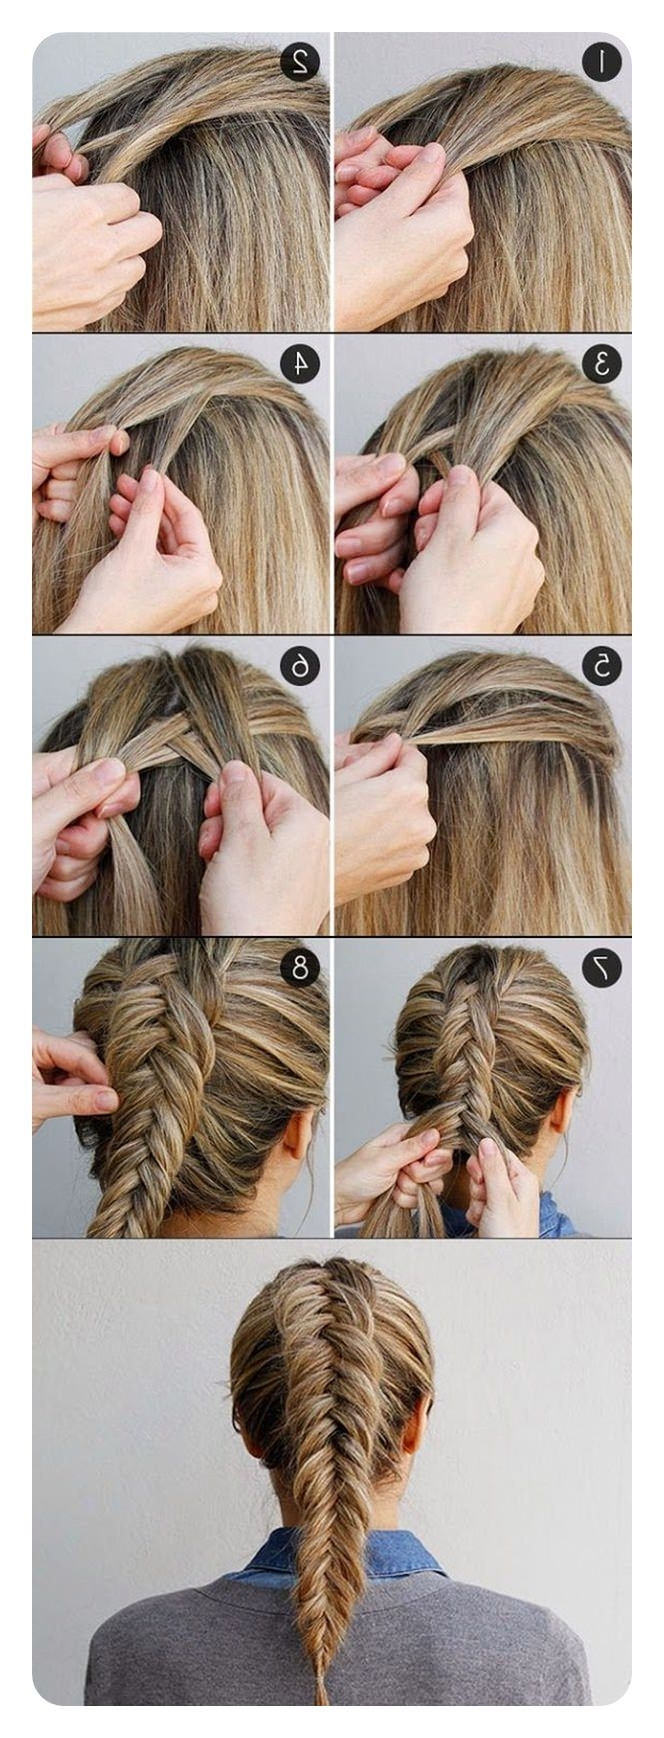 Favorite Wispy Fishtail Hairstyles In 94 Incredible Fishtail Braid Ideas With Tutorials (View 6 of 20)